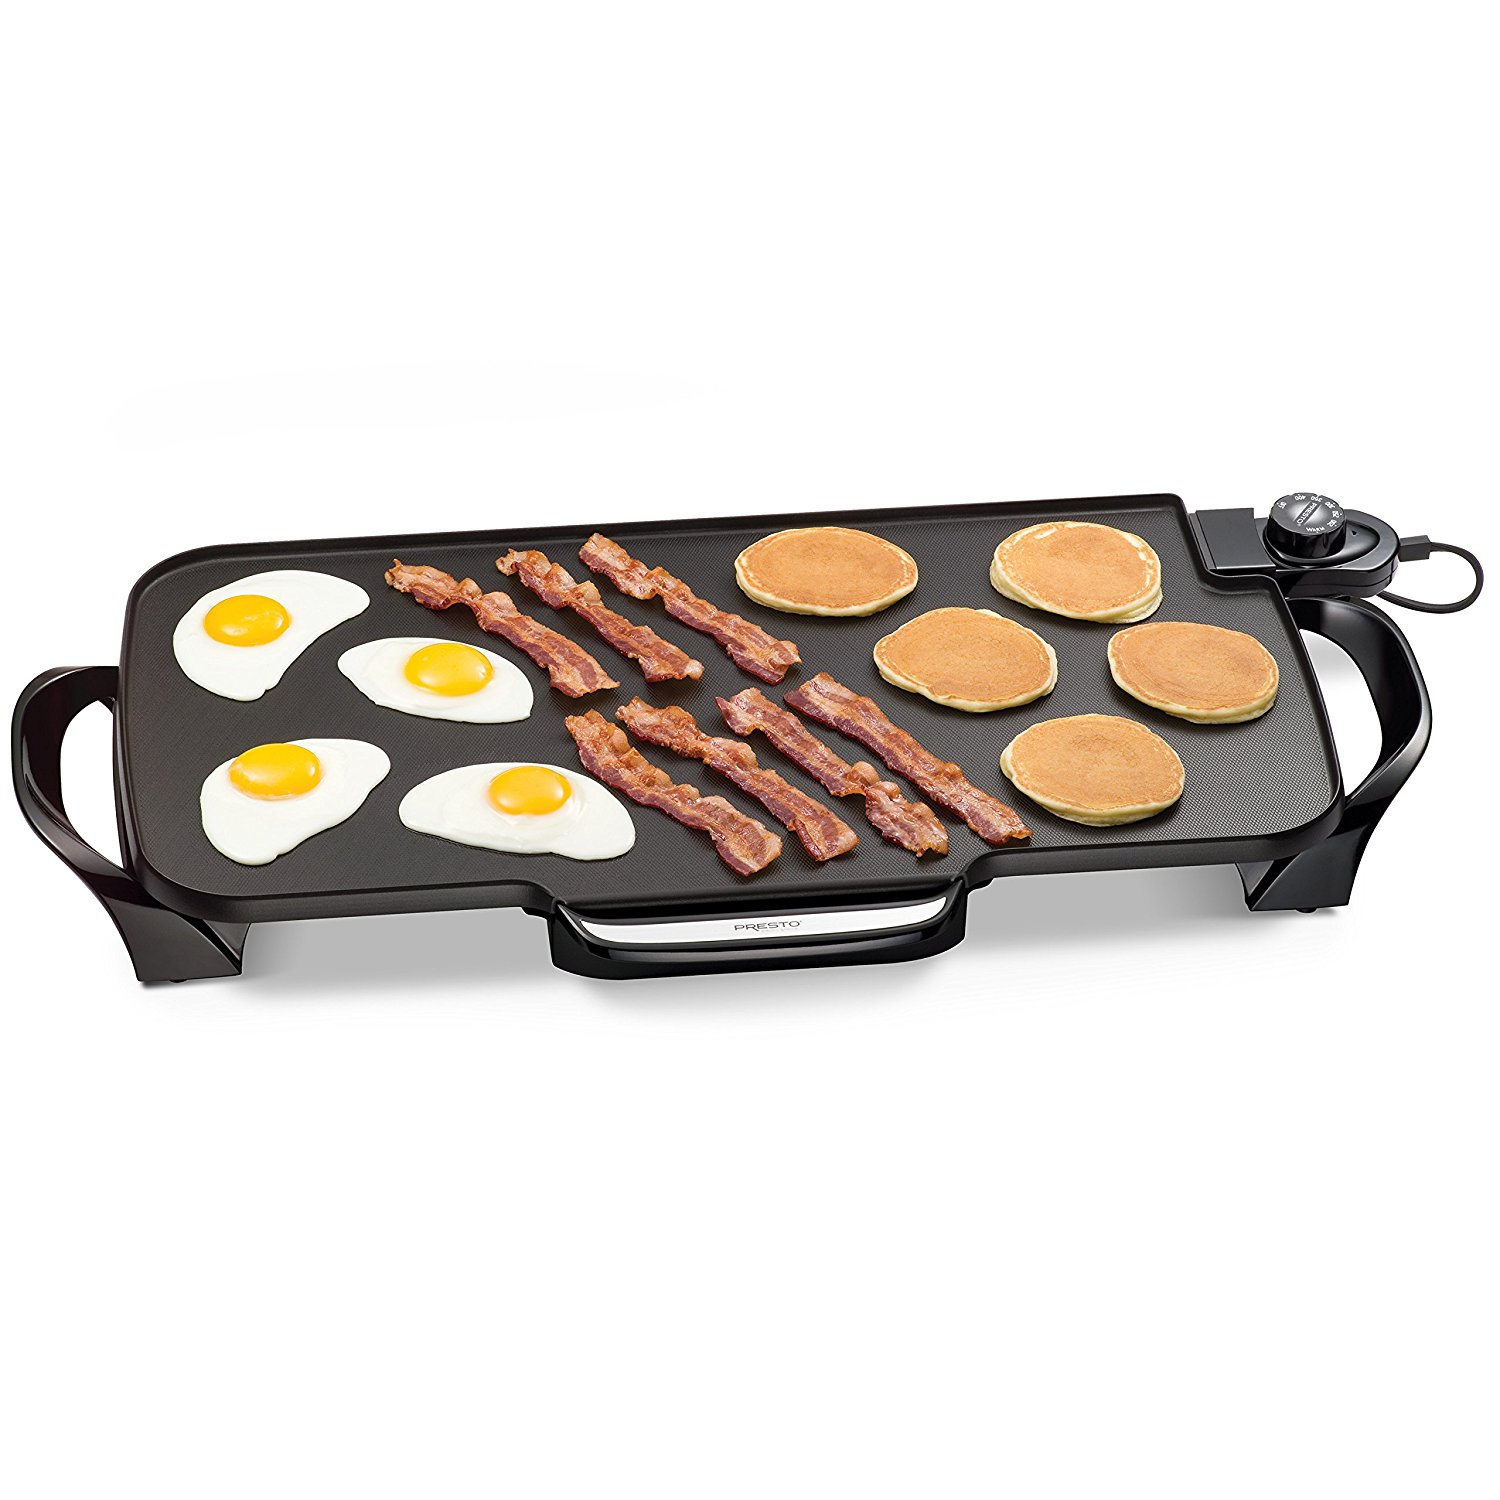 Presto  22-inch Electric Griddle With drip tray, Removable Handles New!